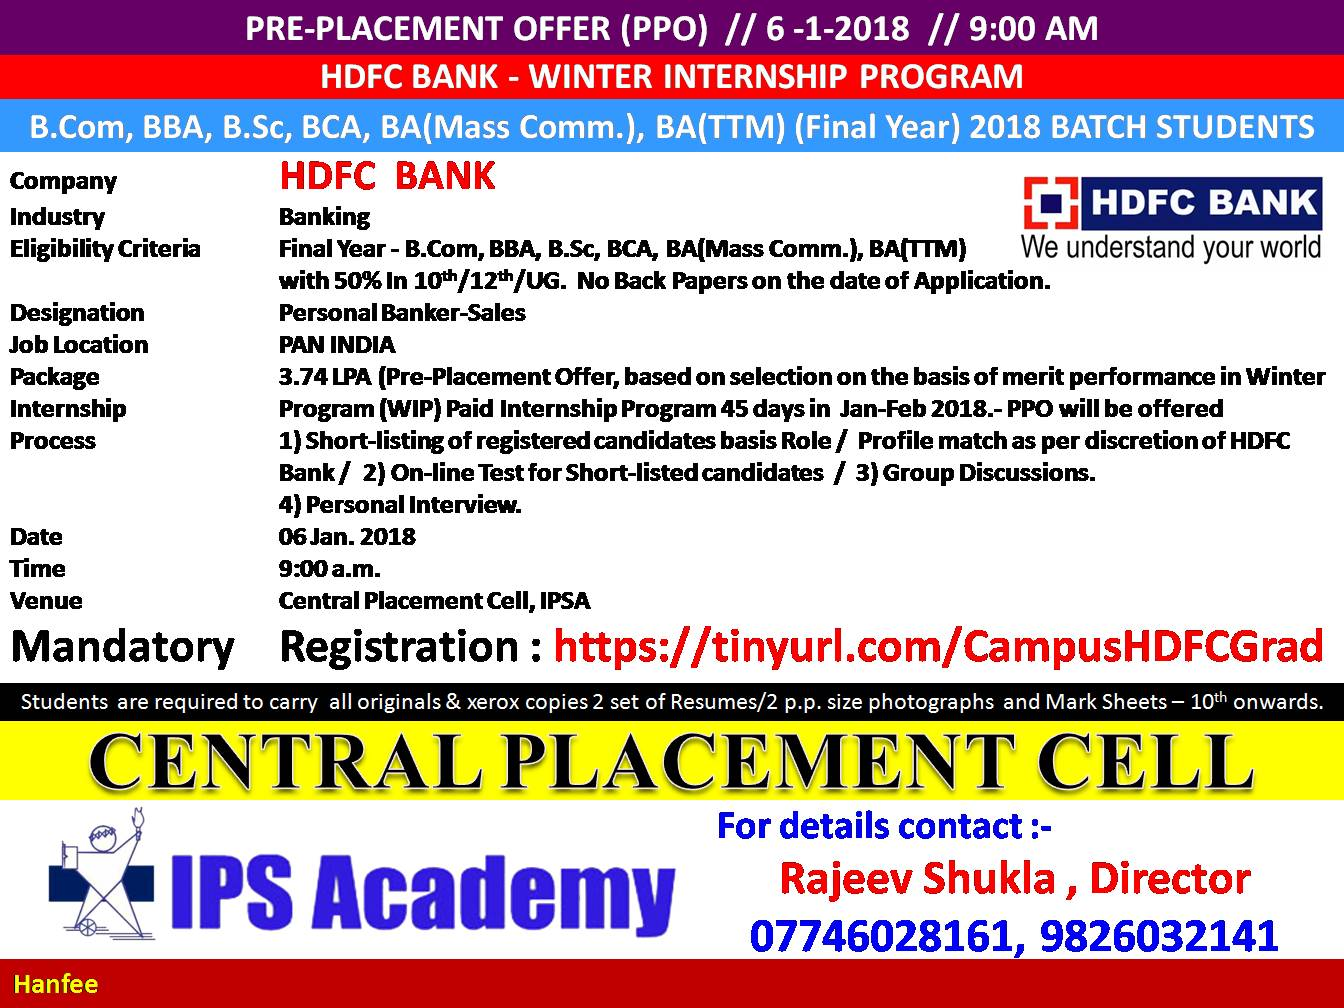 Central Placement Cell: HDFC Bank Campus Drive MBA , PGDM 2018 Batch students